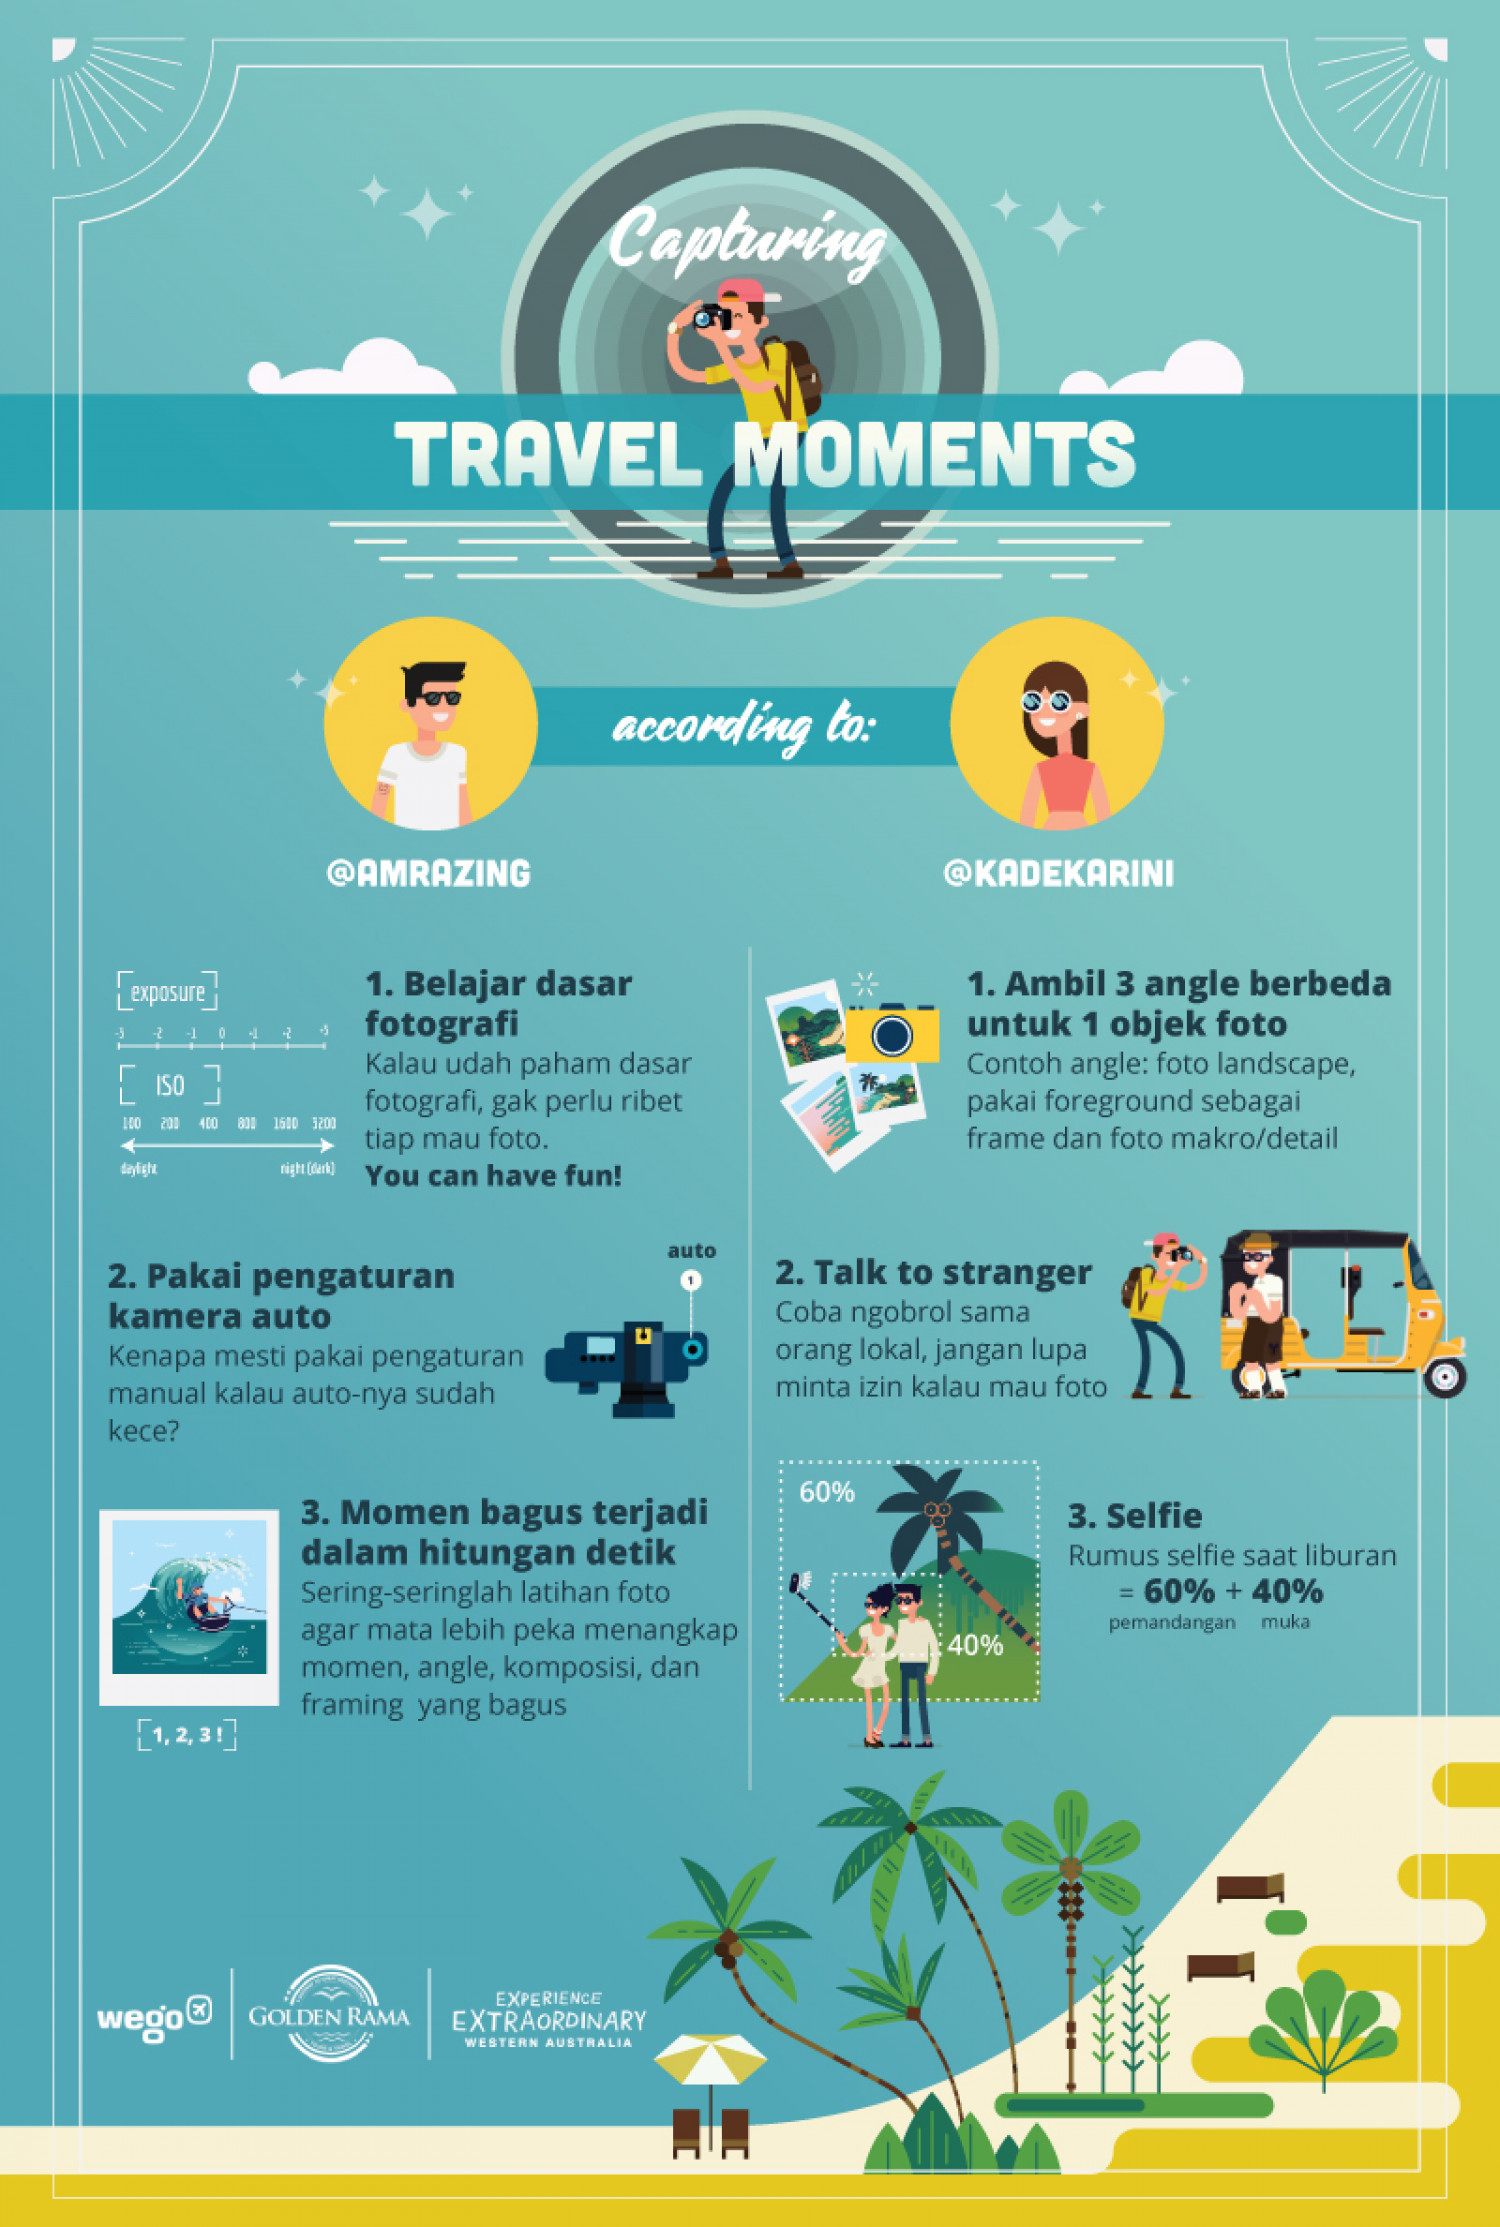 Capturing Travel Moments Infographic